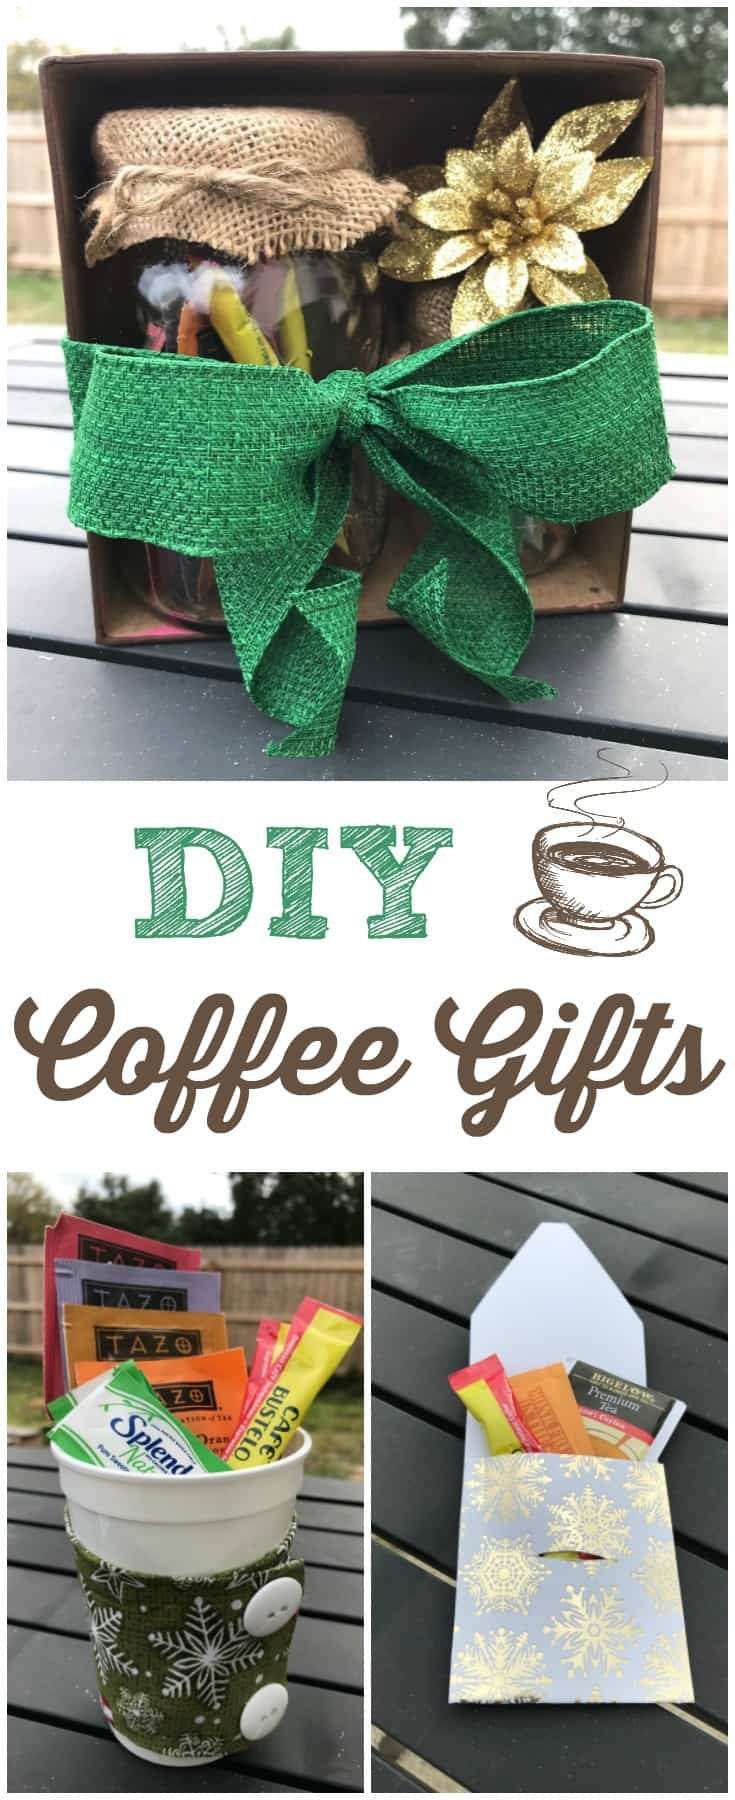 These DIY Coffee Gifts are a wonderful way to perform random acts of kindness for anyone who loves coffee (and they also work great for tea drinkers!). #giftideas #coffee #DIYgifts #randomactsofkindness via @wondermomwannab